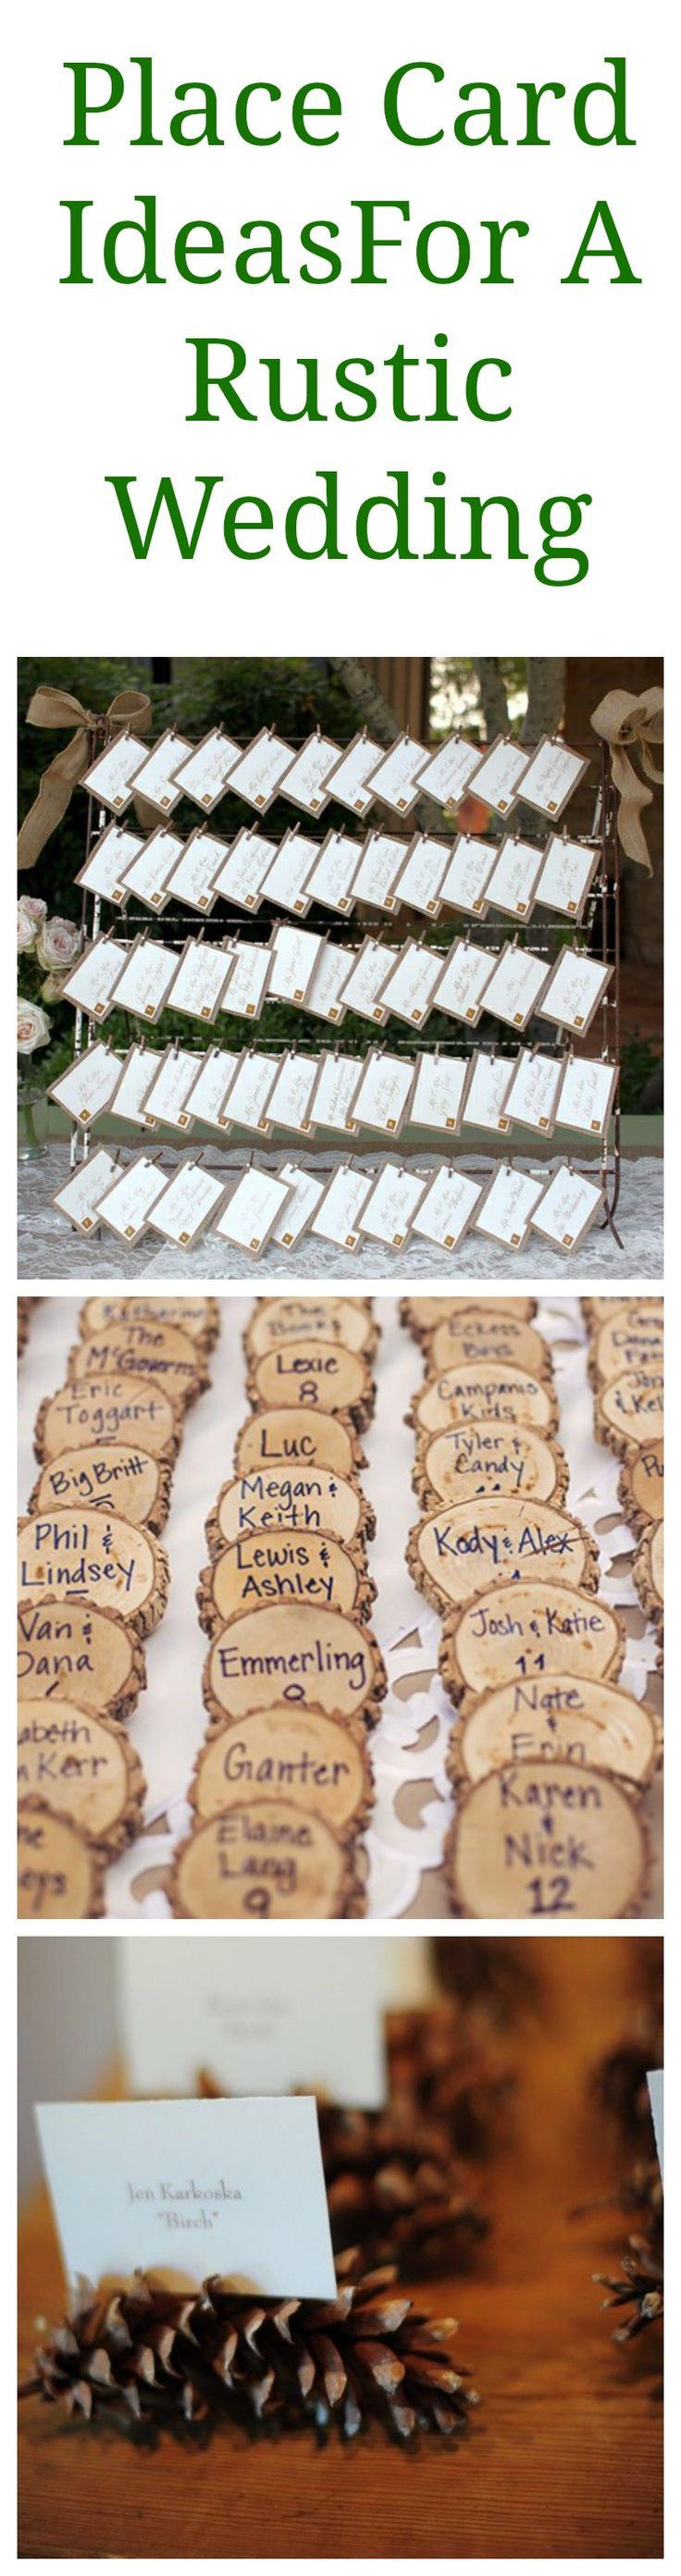 Rustic Wedding Place Card Display Ideas